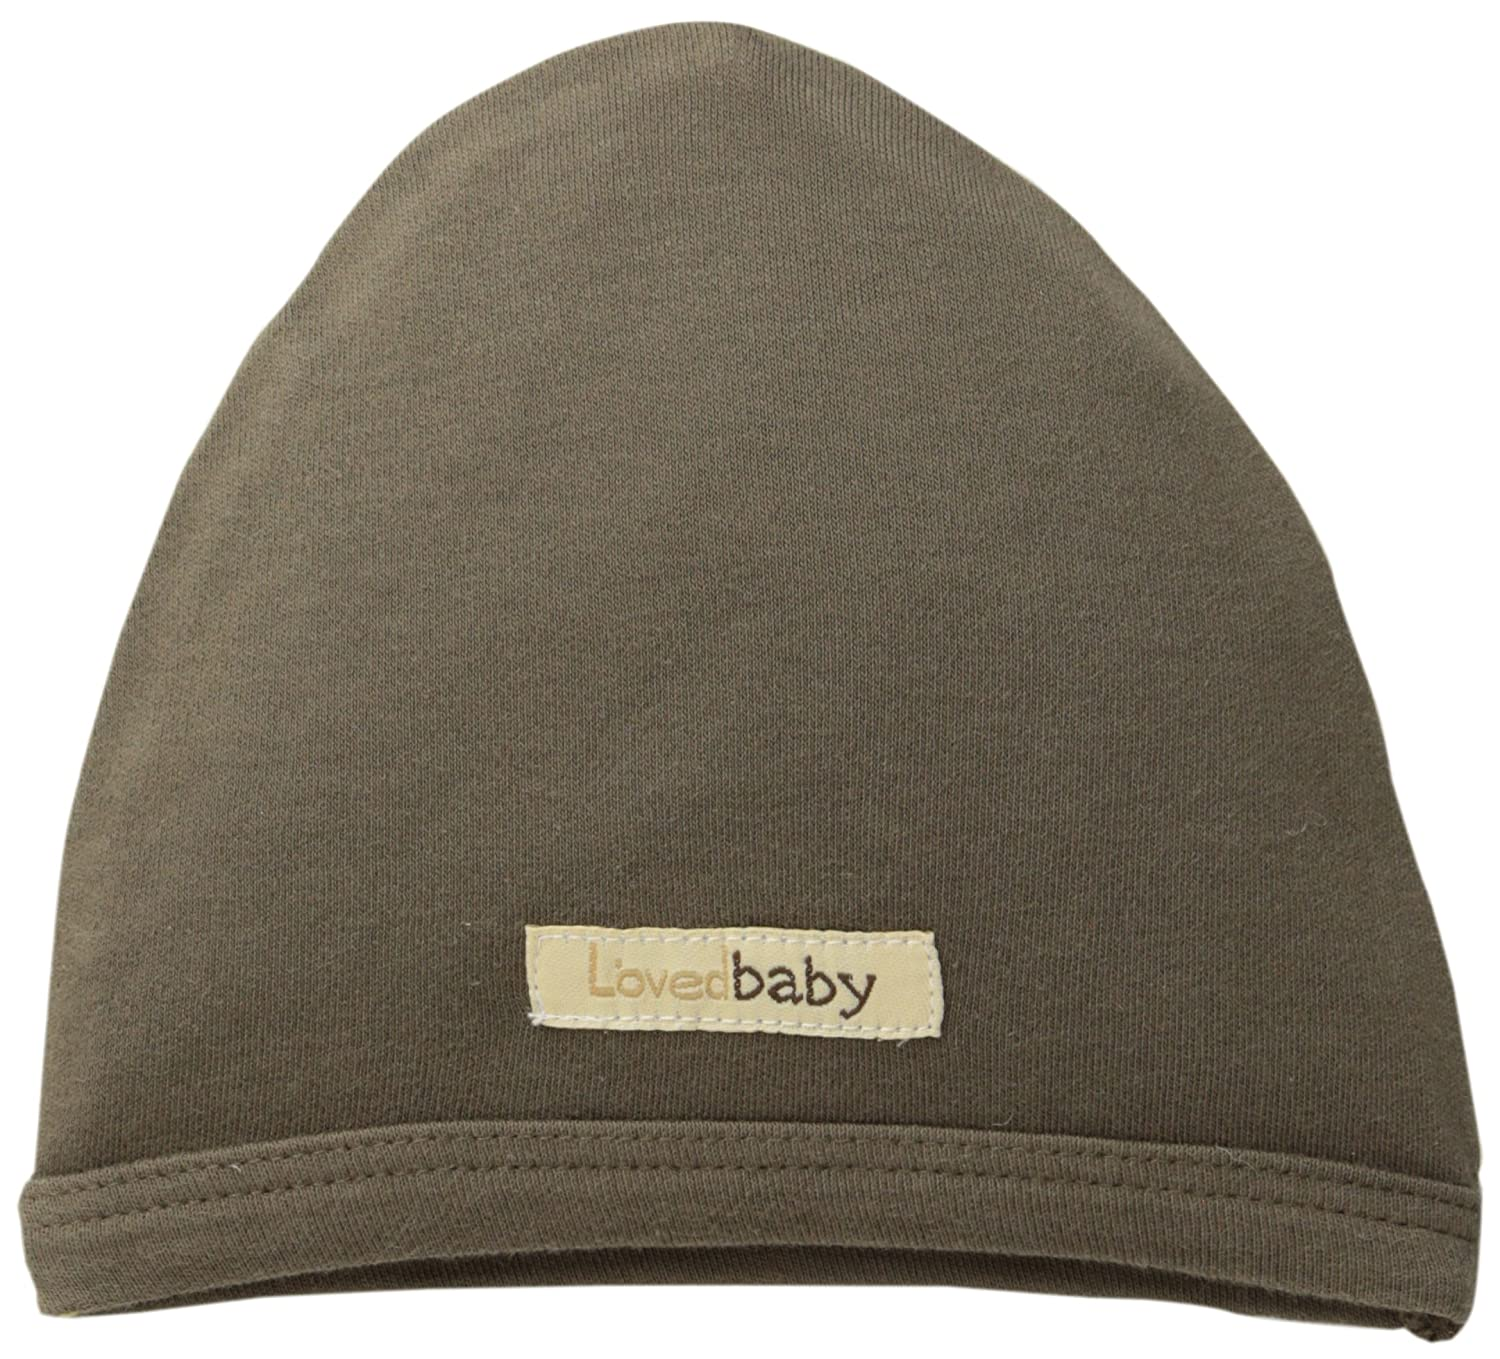 L'ovedbaby Organic Infant Cap L' ovedbaby OR334